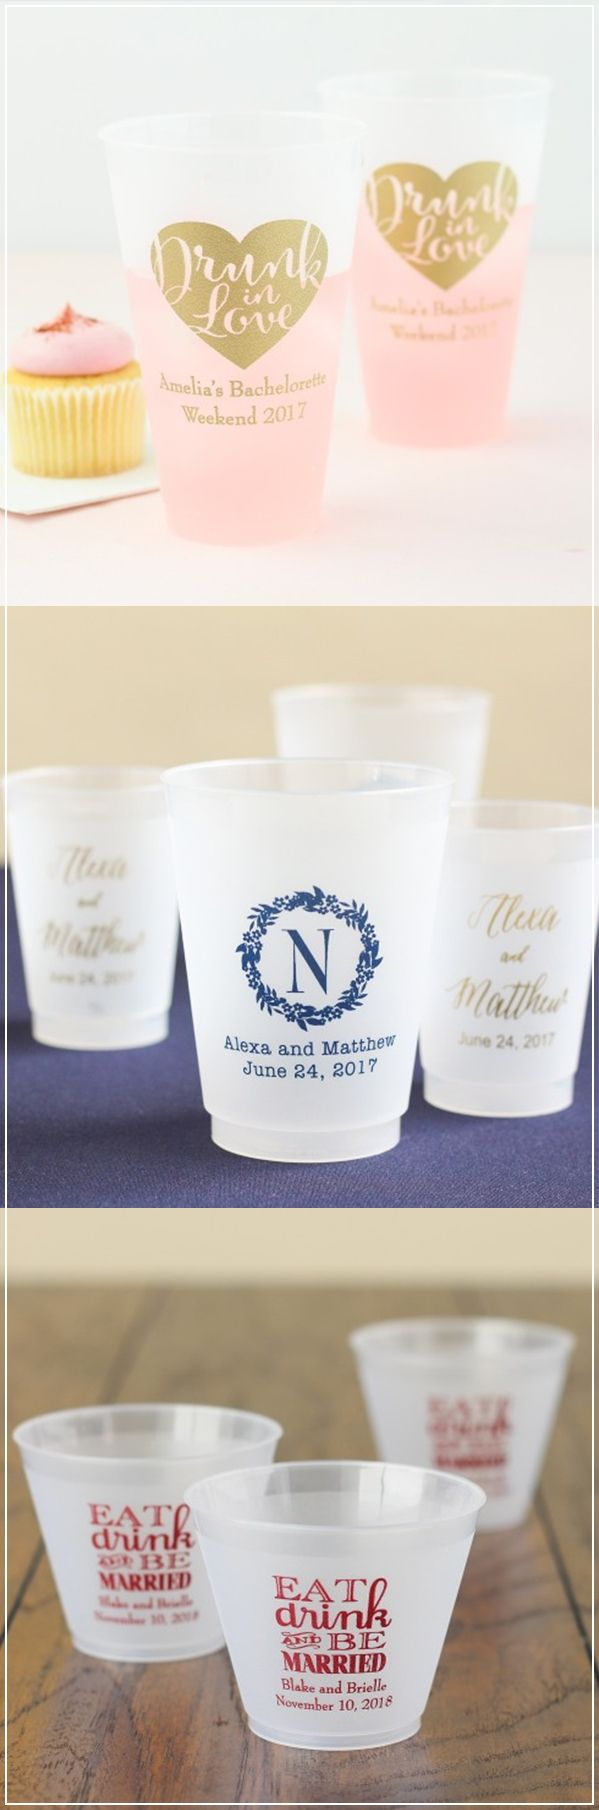 Toast to the bride and groom with the perfect personalized cups! Pick the perfect design and add your custom text for a one of a kind celebration!